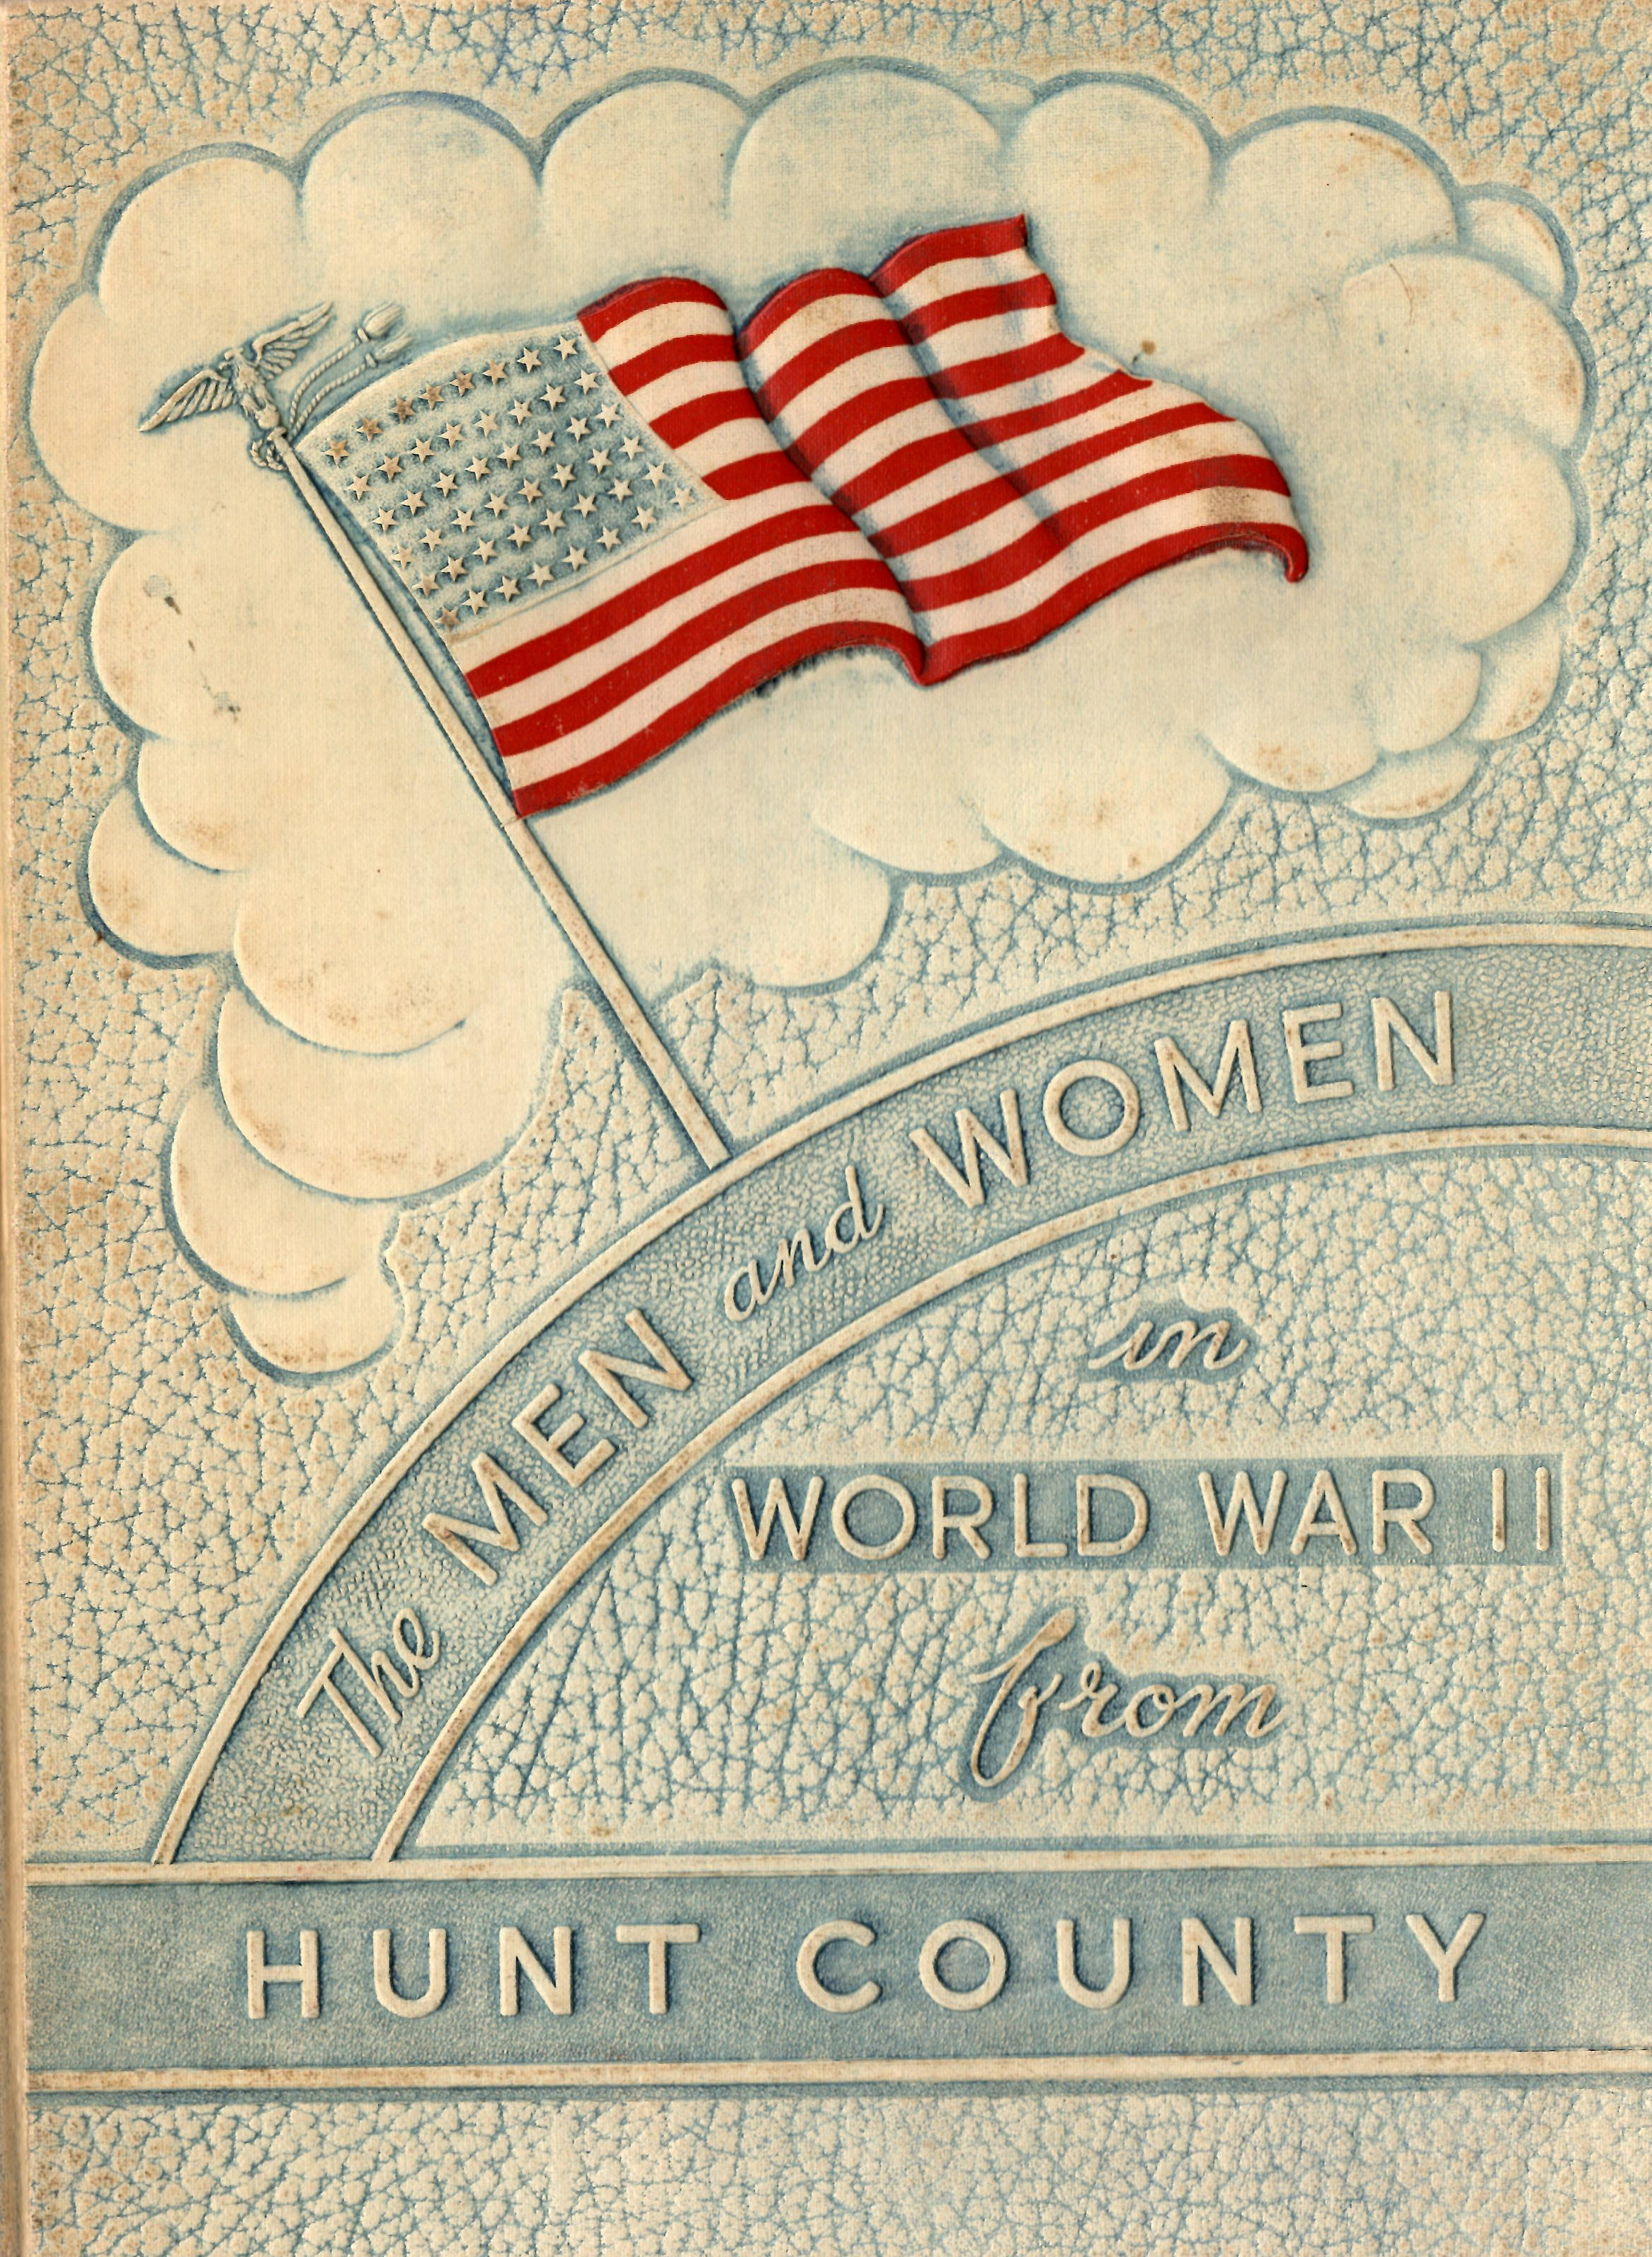 Men and women in the Armed Forces from Hunt County Texas ww2 wwii World War